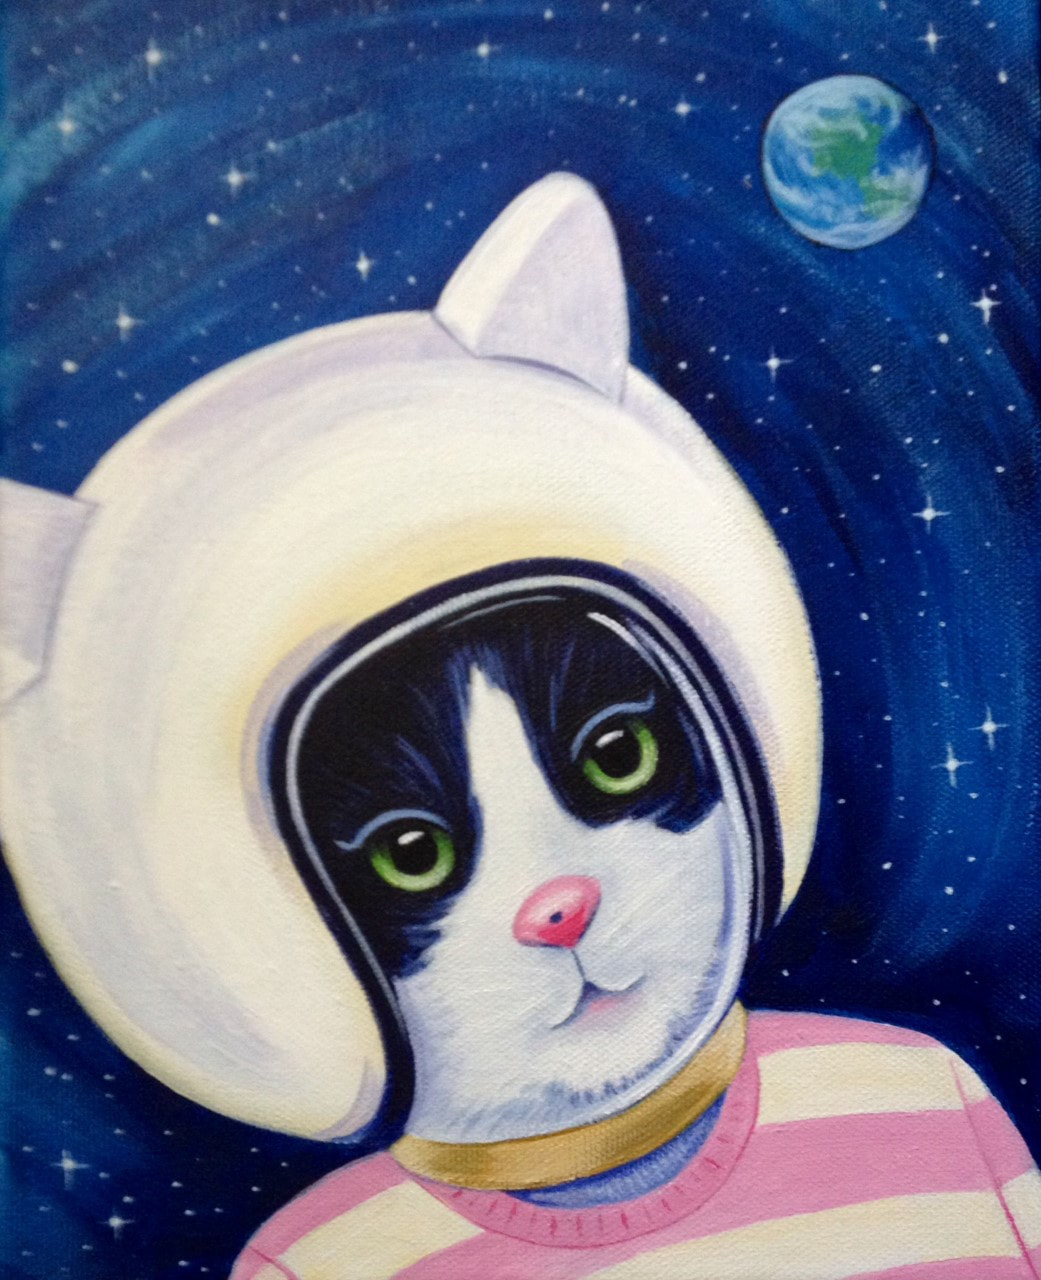 Sinisters Space Kitty print